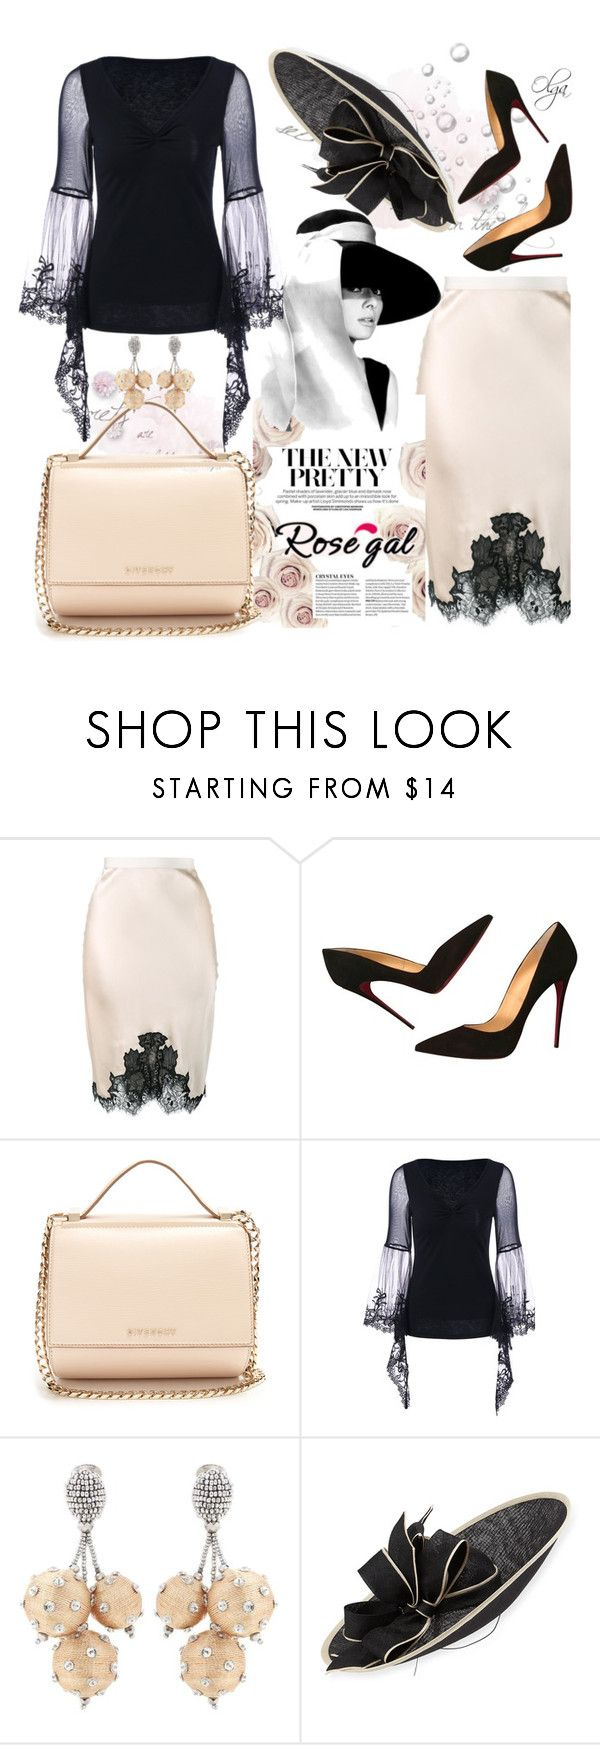 """""""Madame"""" by olga1402 ❤ liked on Polyvore featuring Helmut Lang, Christian Louboutin, Givenchy, Oscar de la Renta and Rachel Trevor-Morgan"""